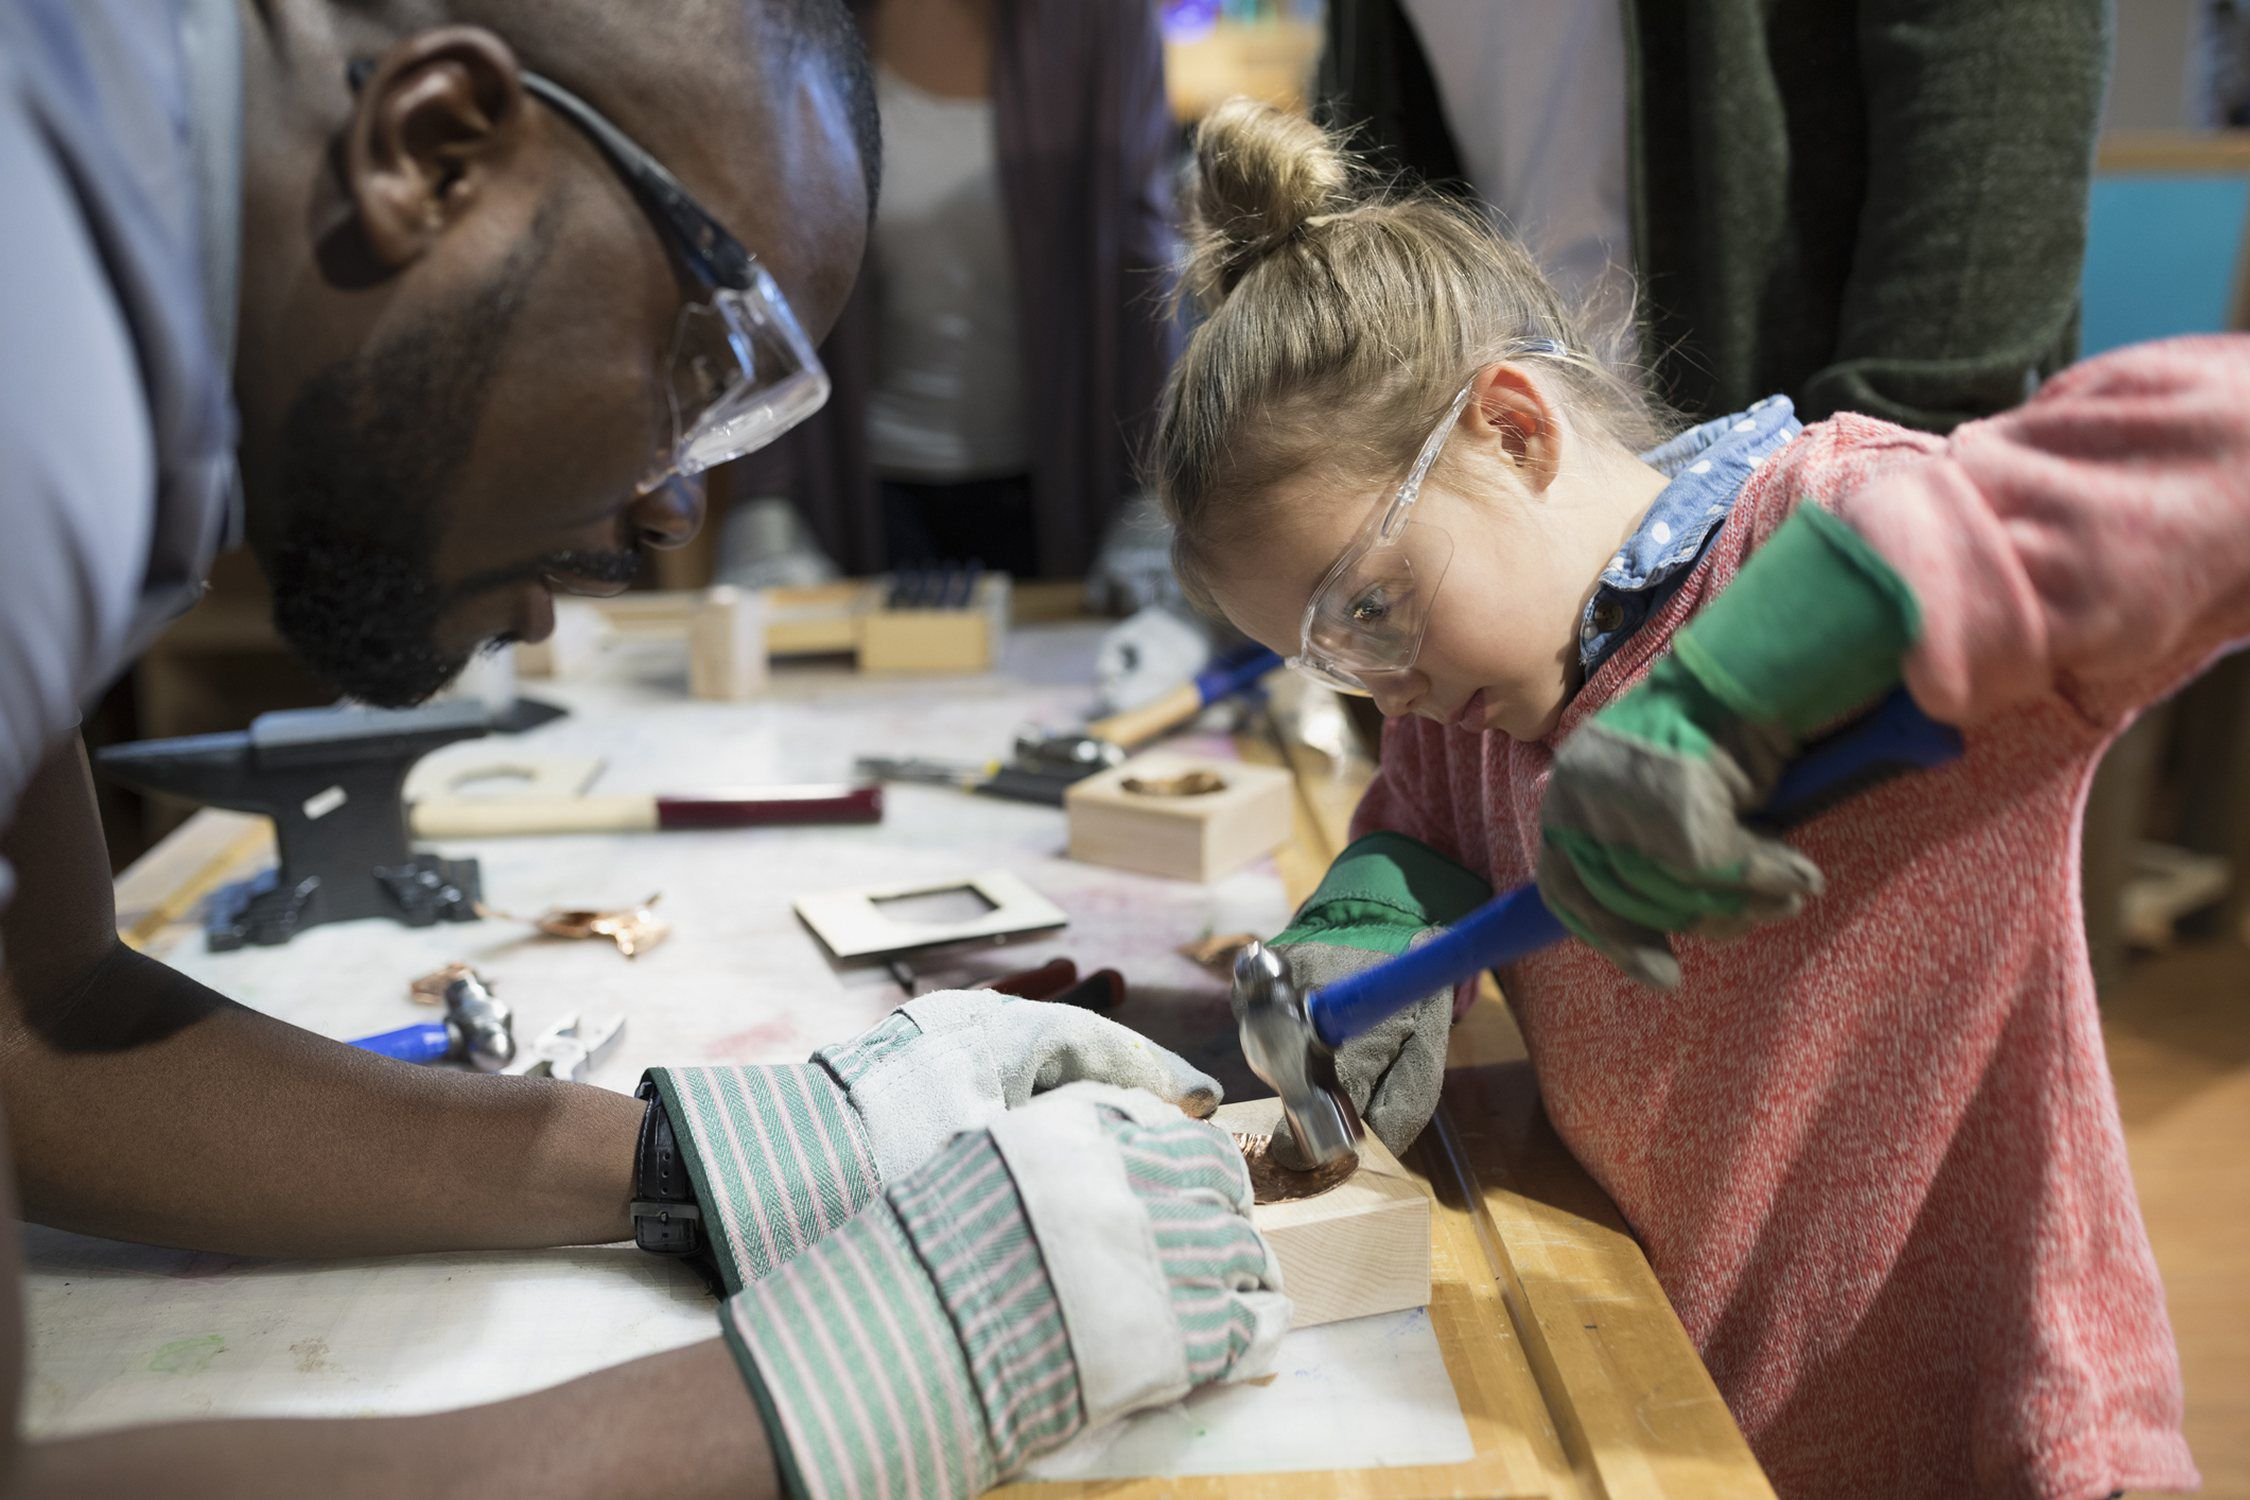 Lowes Free Build And Grow Workshops For Kids